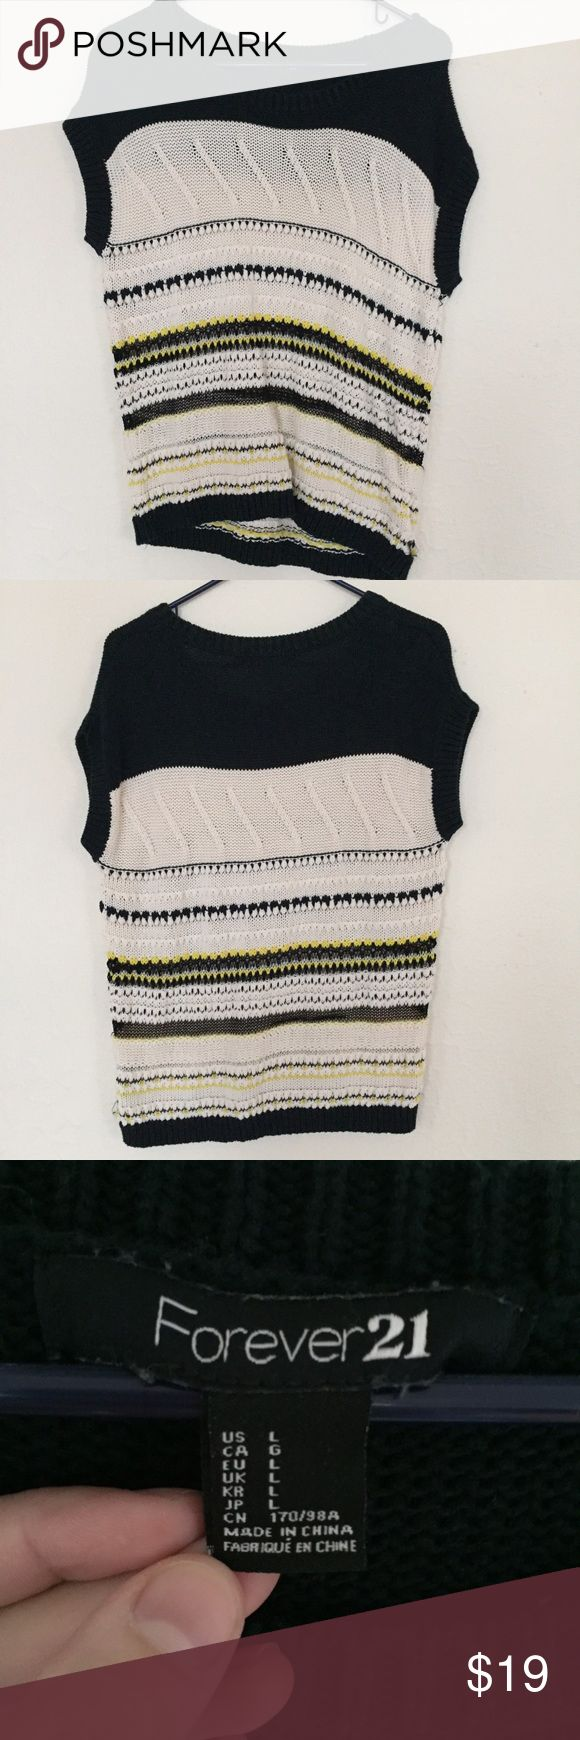 Short Sleeved Casual Sweater Unique styled knit sweater with short sleeves. Cute with a long sleeve undershirt or tank top. I wear small and I like this style loose but could fit like a tighter medium or large. In great condition. Ask me any questions. Forever 21 Sweaters